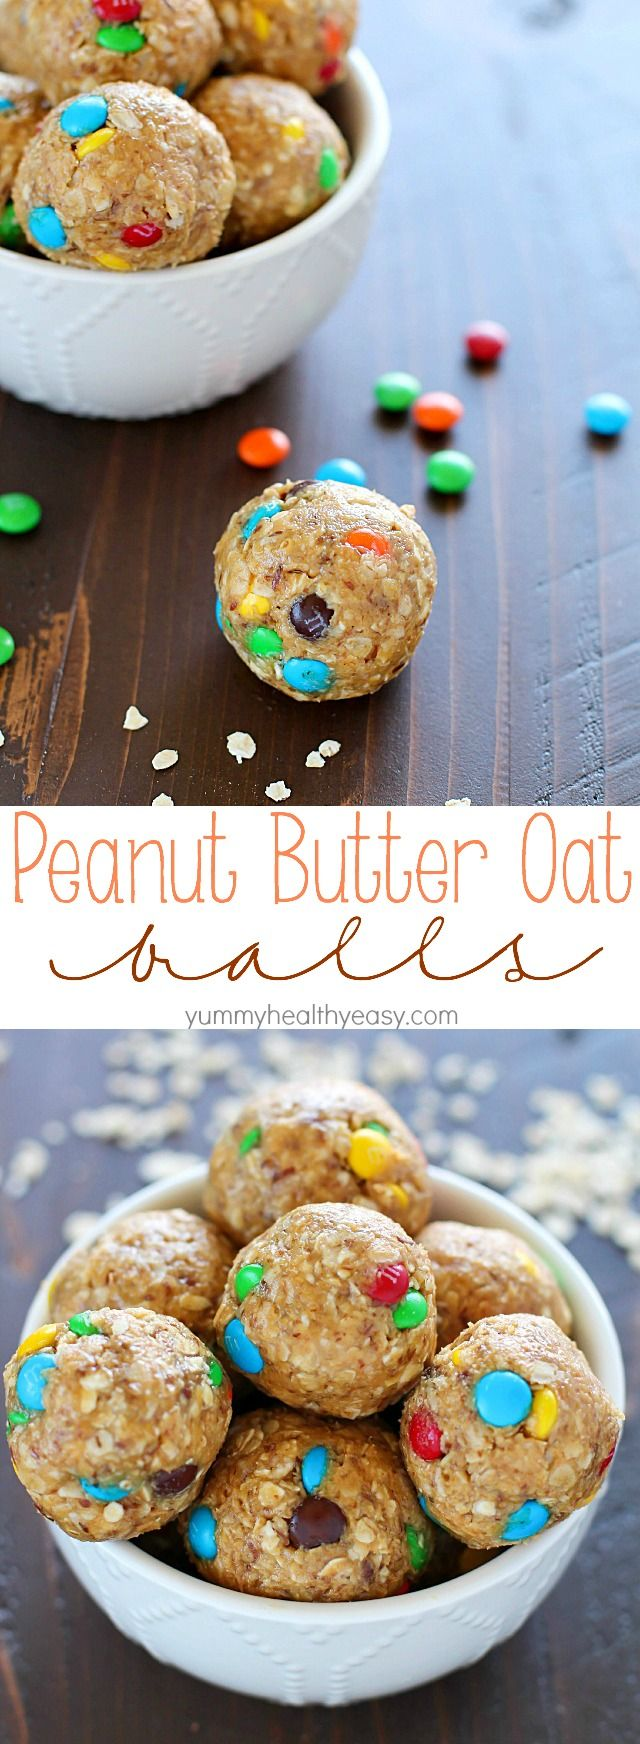 Unbelievably delicious Peanut Butter Oat Balls made in minutes, with only a few ingredients. Plus a KitchenAid Mixer with Ice Cream Maker Giveaway!